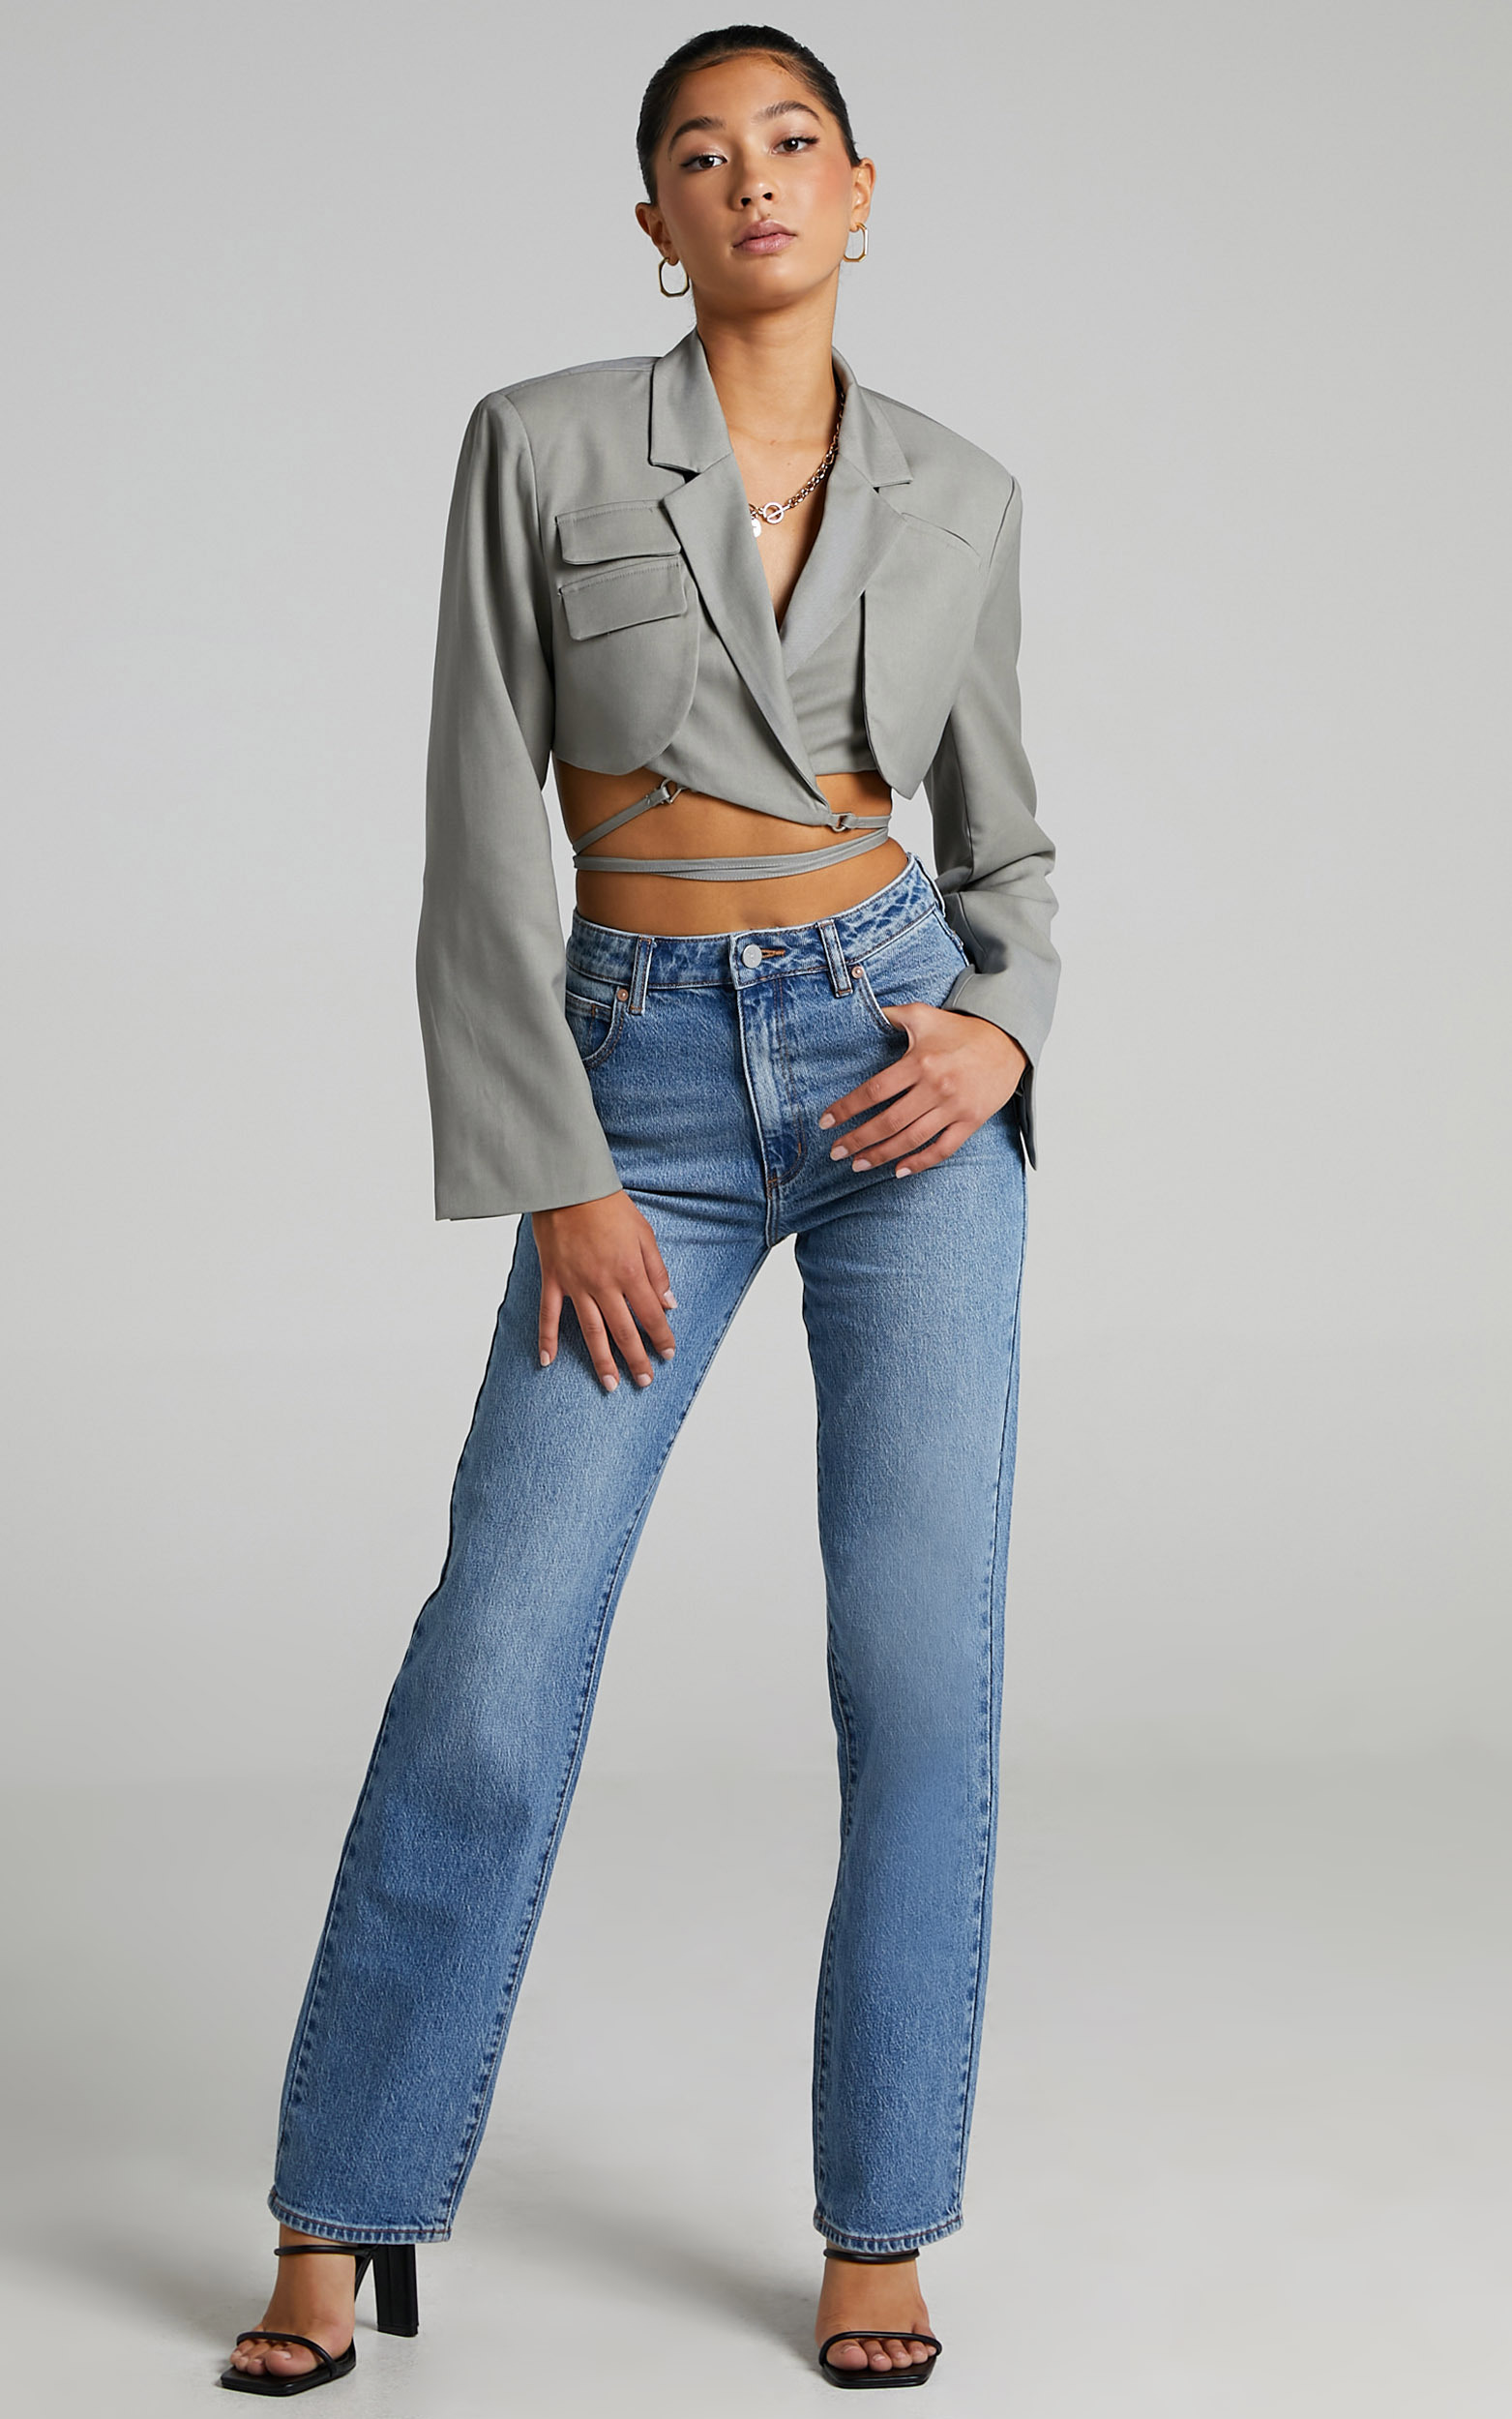 Abrand - A 94 High Straight Jean in Erin - 06, BLU1, hi-res image number null